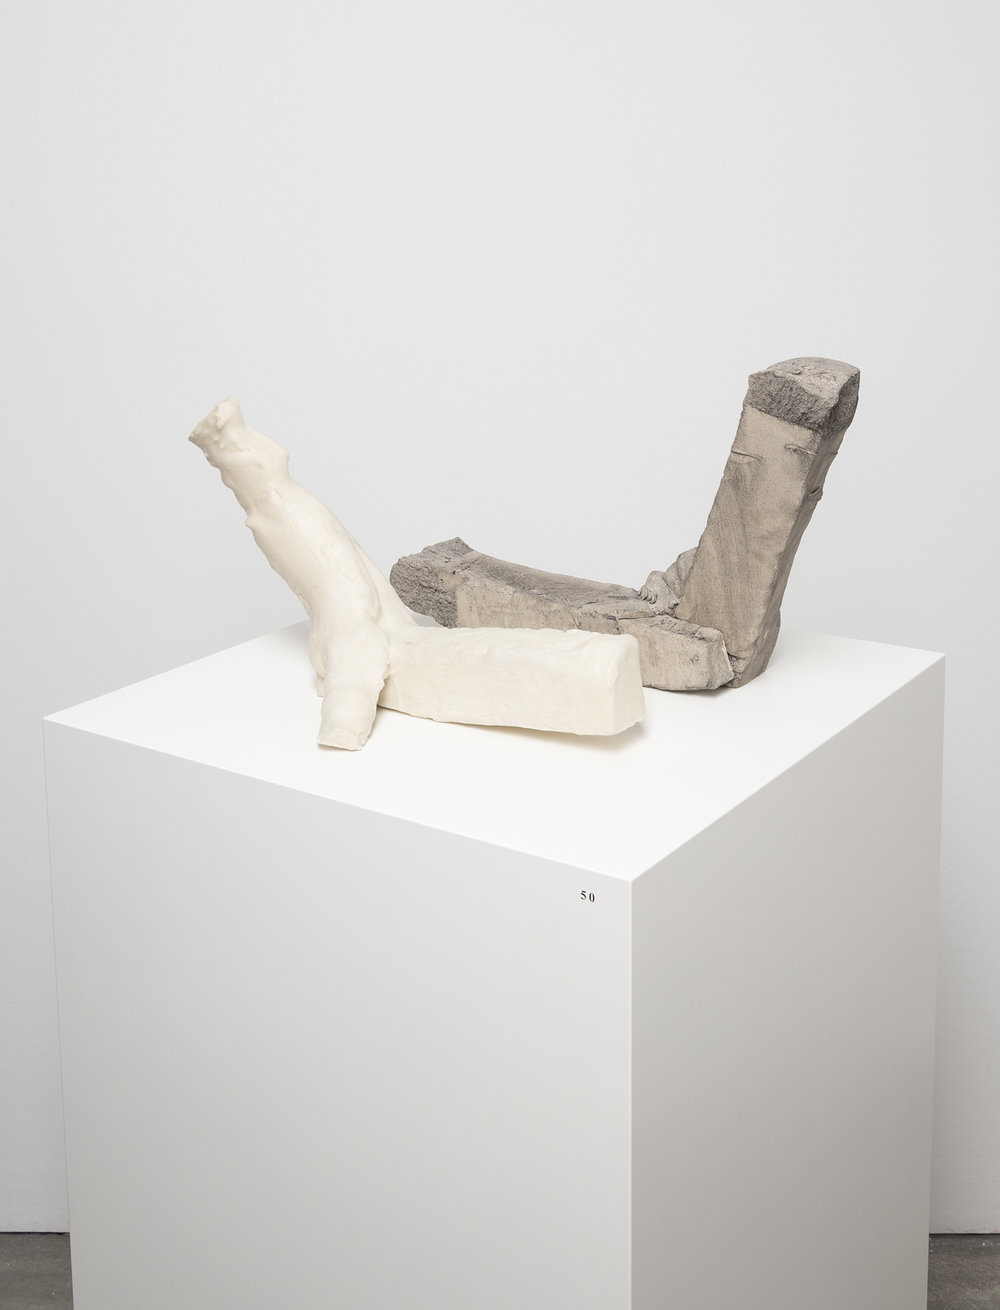 MM/S 152,  Michael Müller    Gebeine , 2012, 2 part work  clay, wax, ink  28 × 50 × 45 cm   100 × 50 × 50 cm